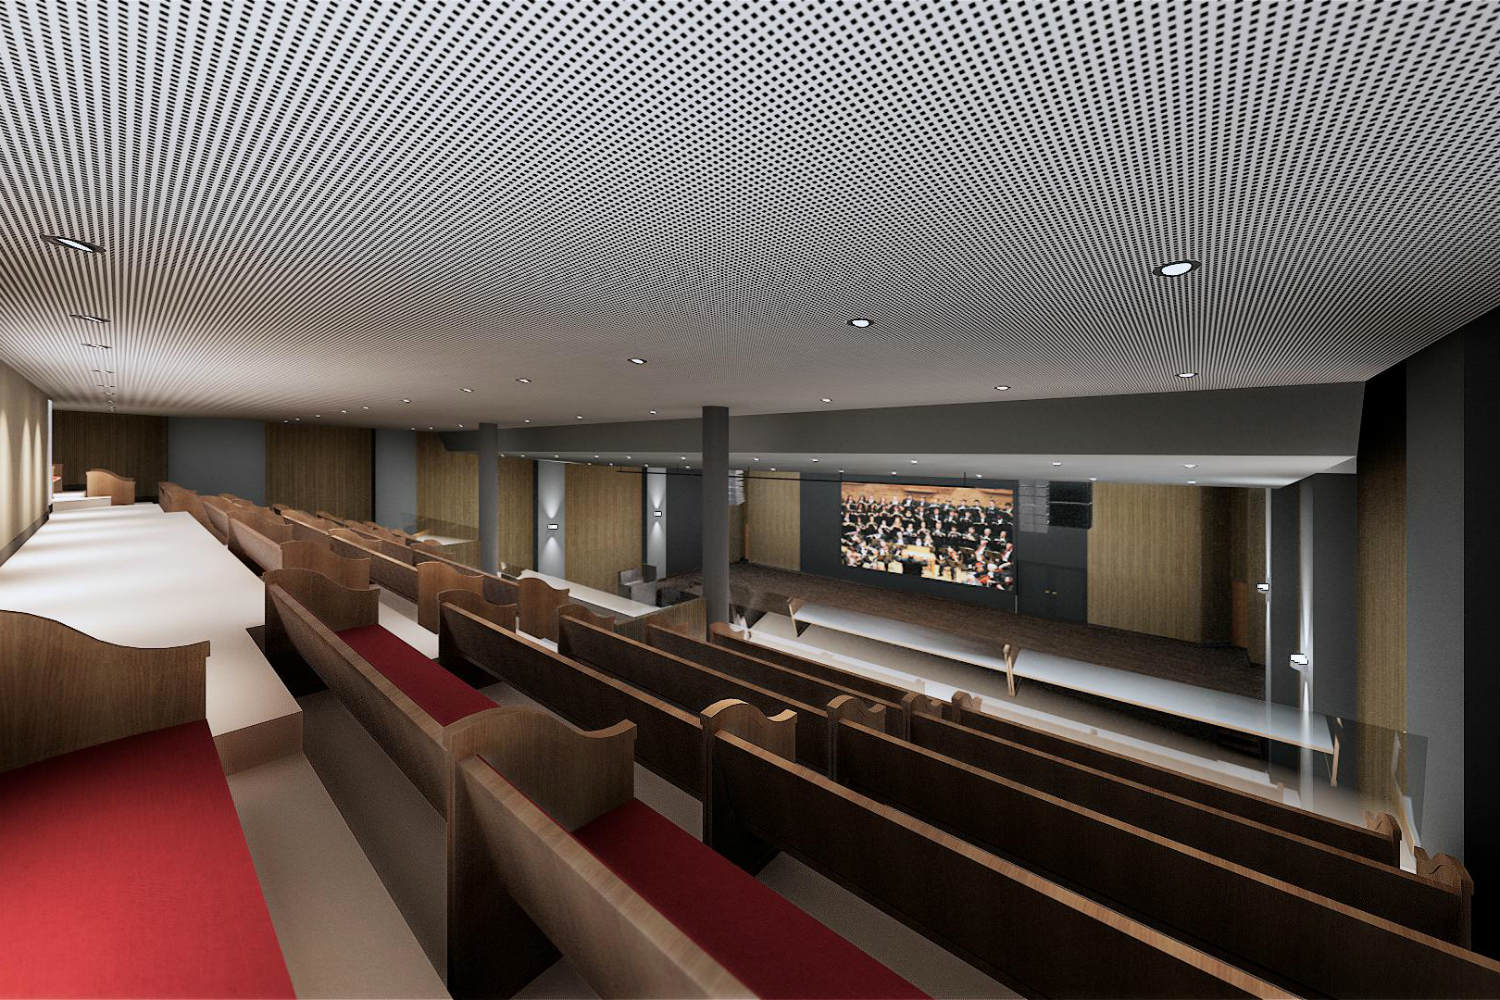 IBP has created a contemporary house of worship in São José. By engaging WSDG at the design stage, the Church planners were assured of providing their parishioners with superb acoustics for their worship services. Render 3